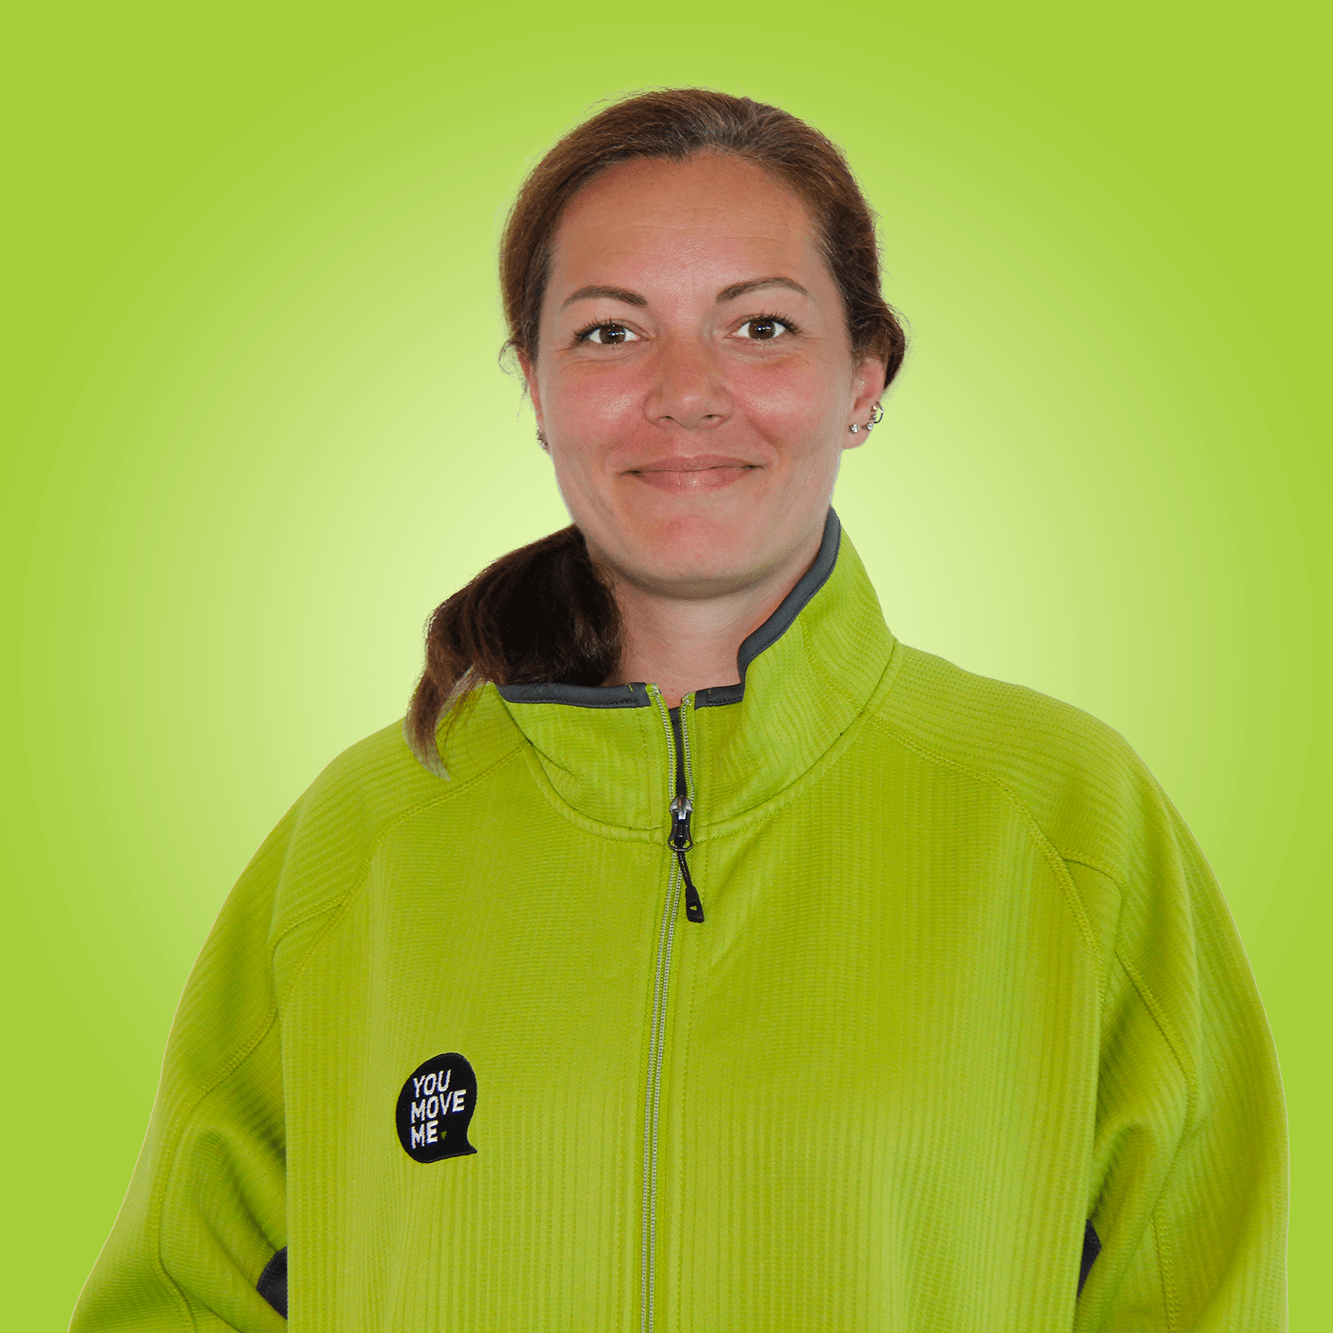 Danielle Elliot, Customer Experience Manager of You Move Me Vancouver BC